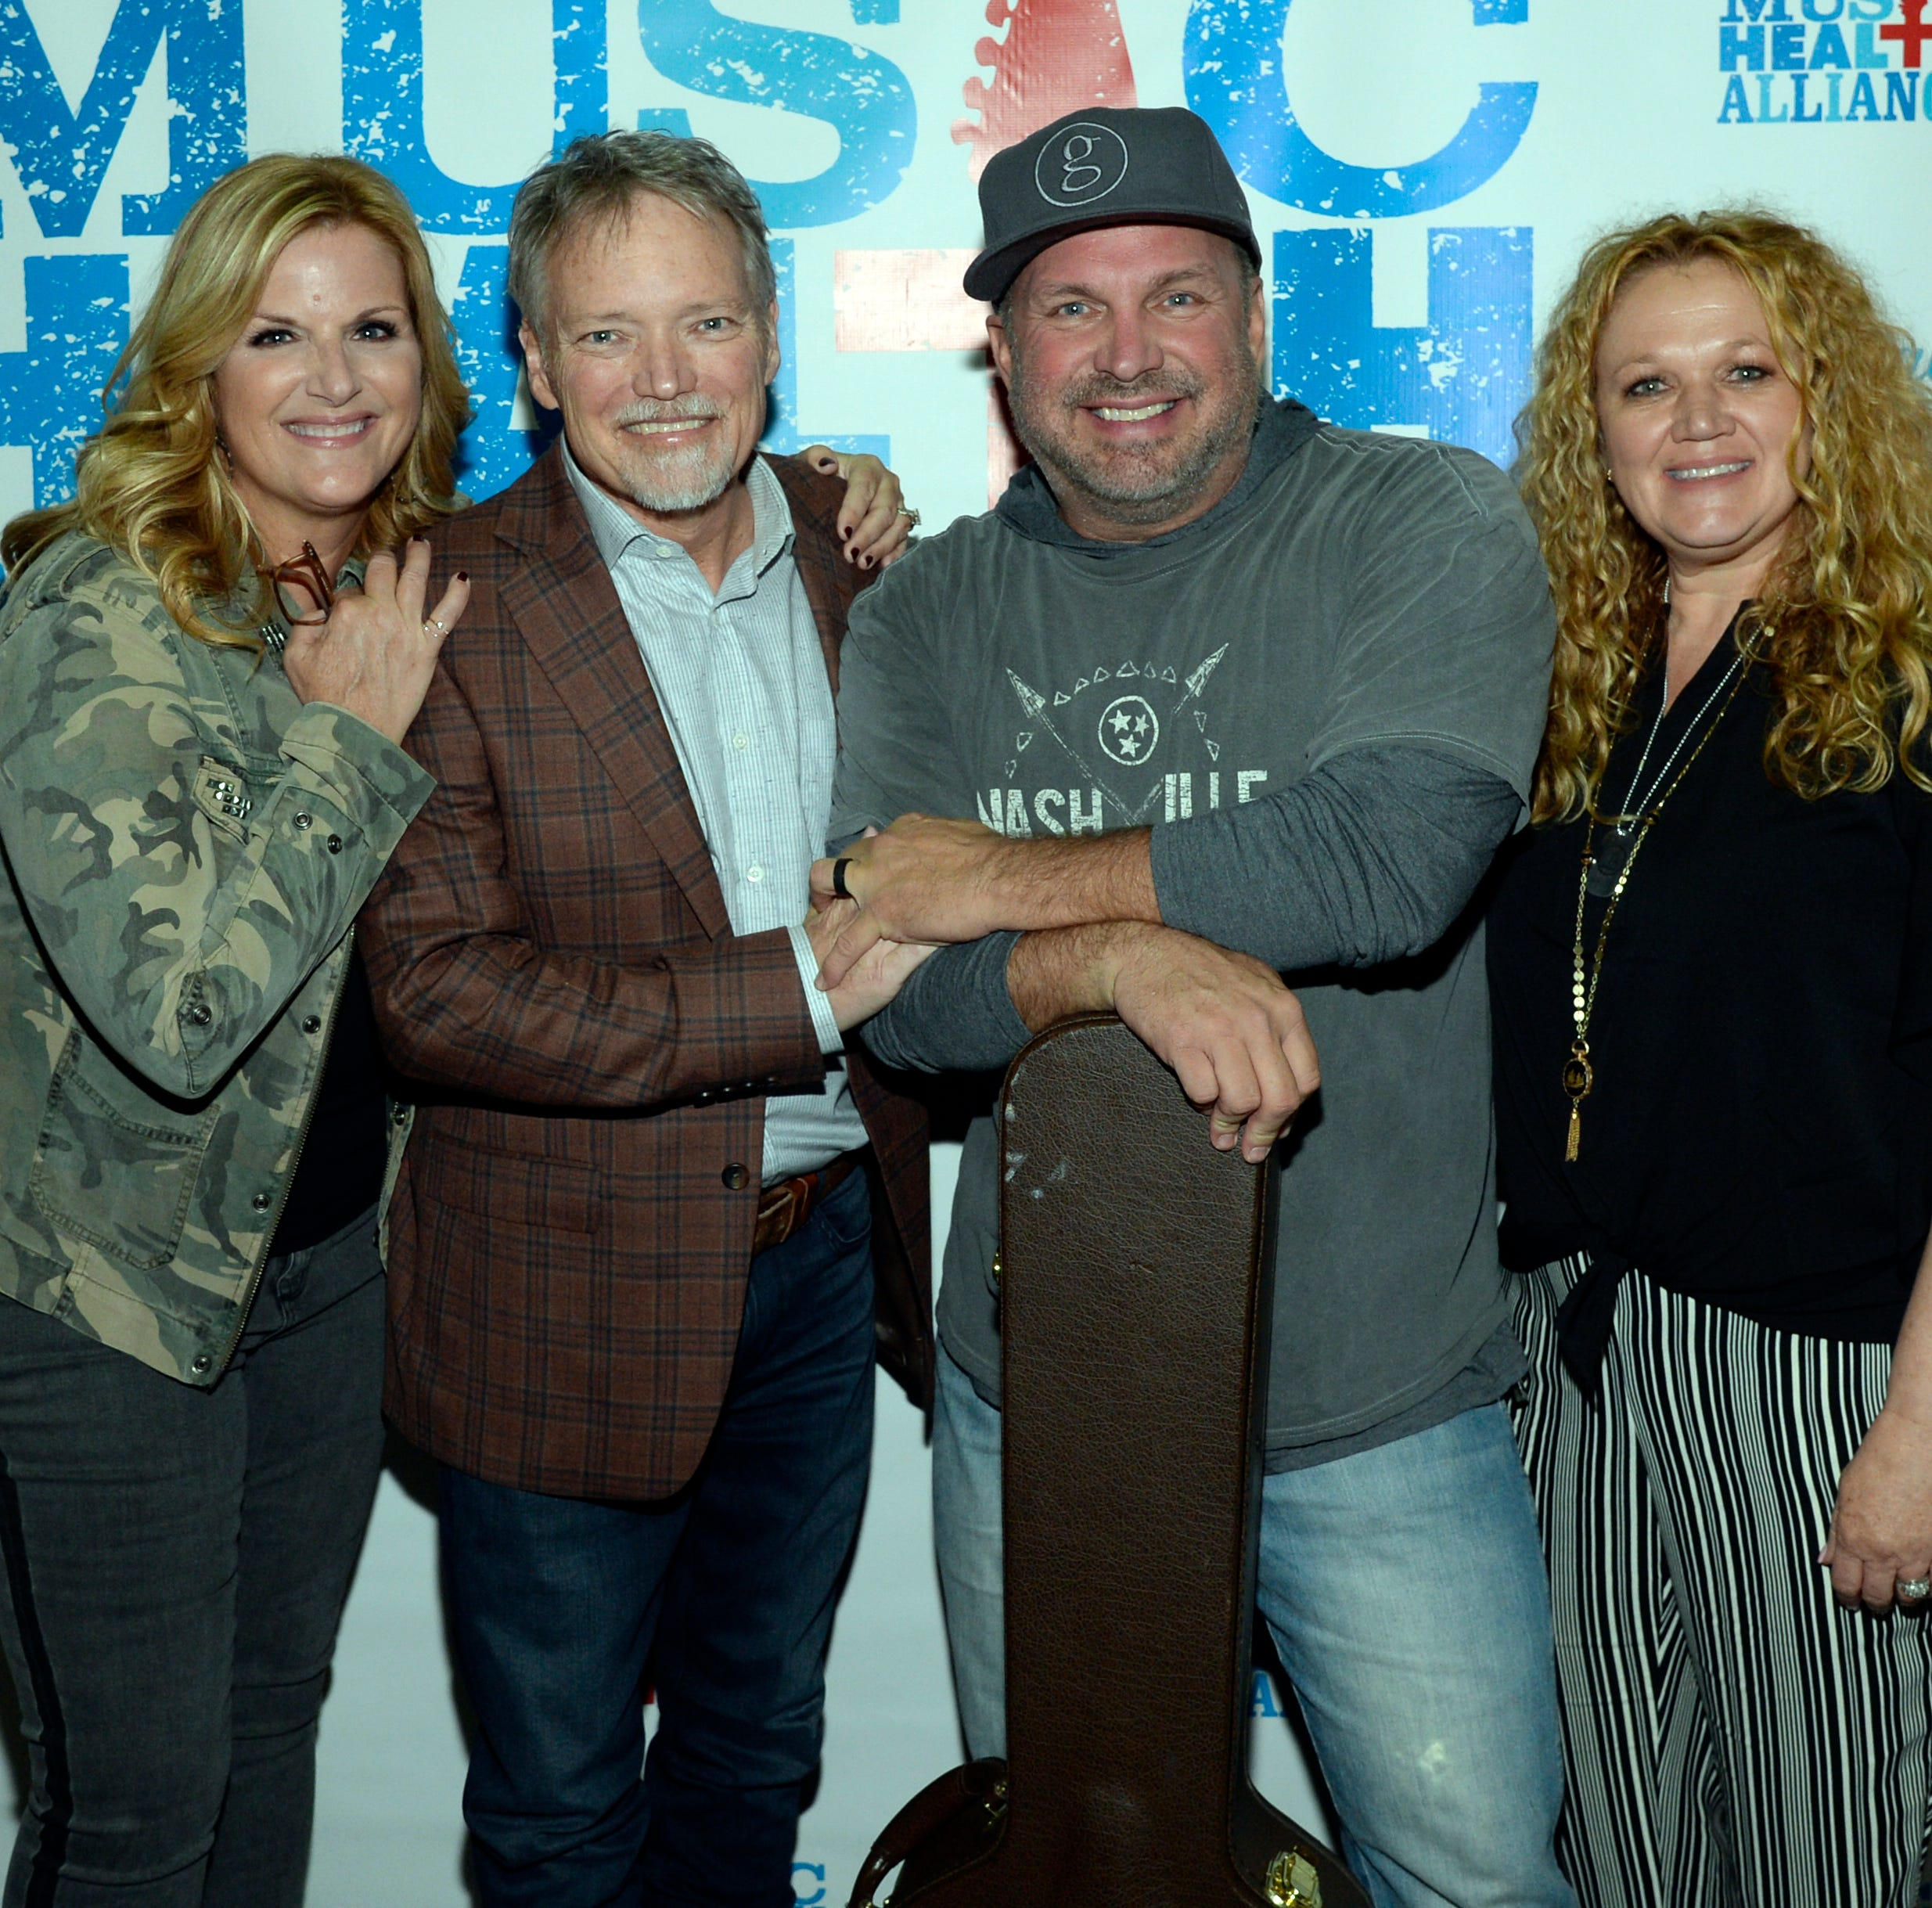 John Berry's gets boost from Garth Brooks, Trisha Yearwood, Vince Gill, at cancer benefit